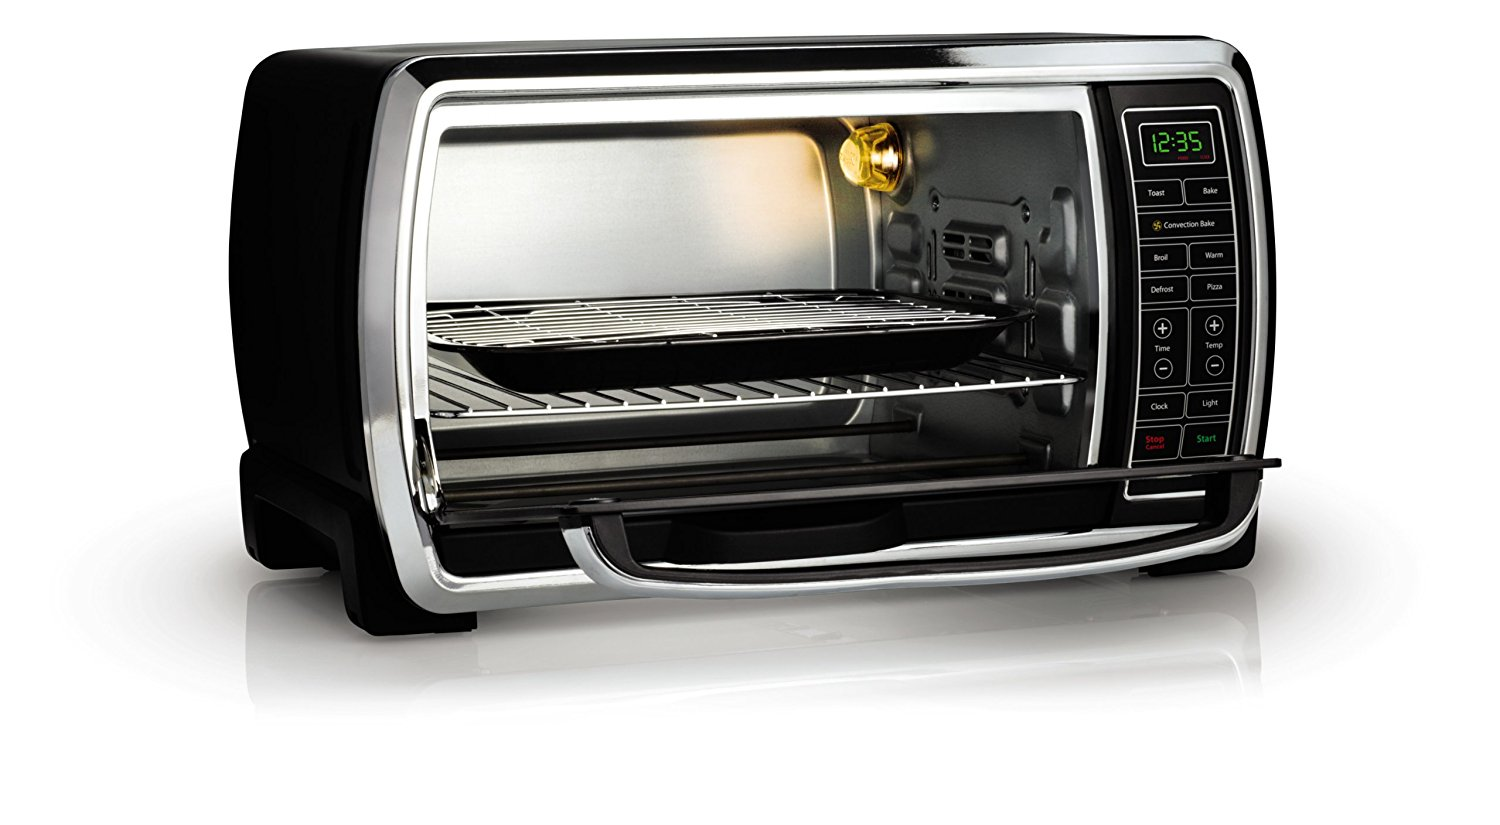 Top 7 best toaster ovens reviewed for healthy cooking - Cool touch exterior convection toaster oven ...